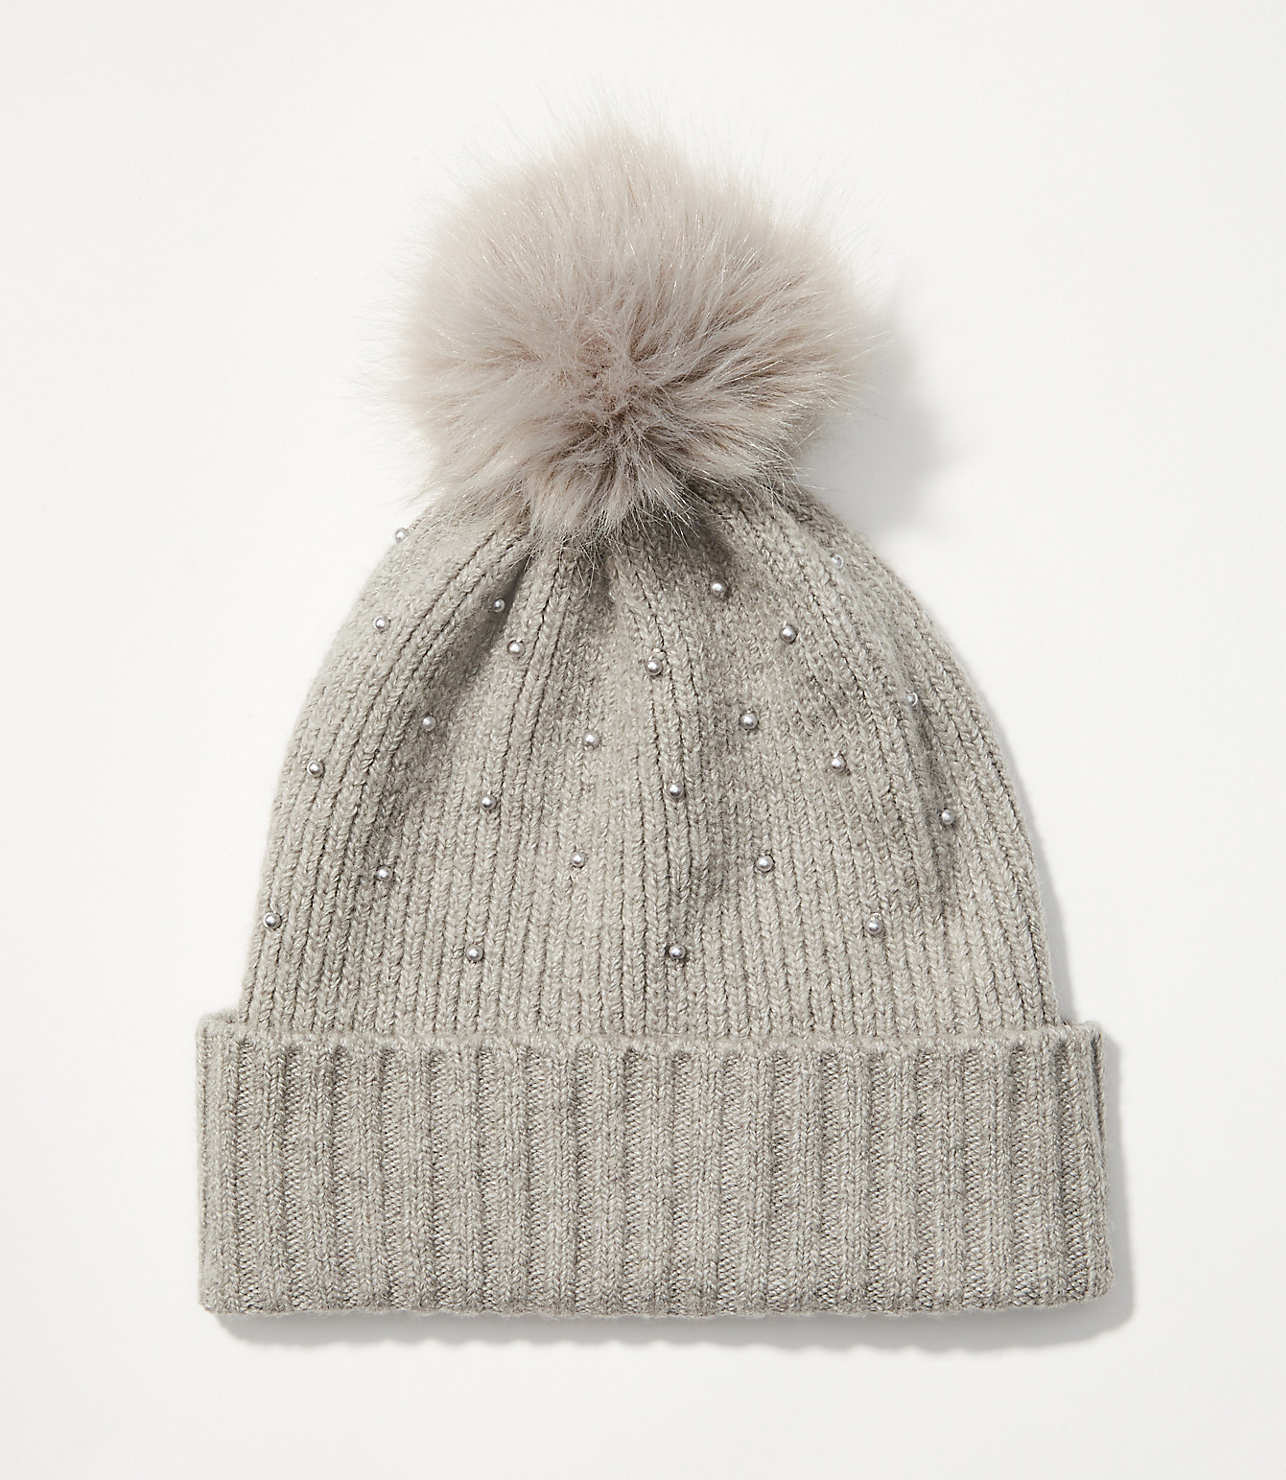 Pearlized Faux Fur Pom Pom Hat